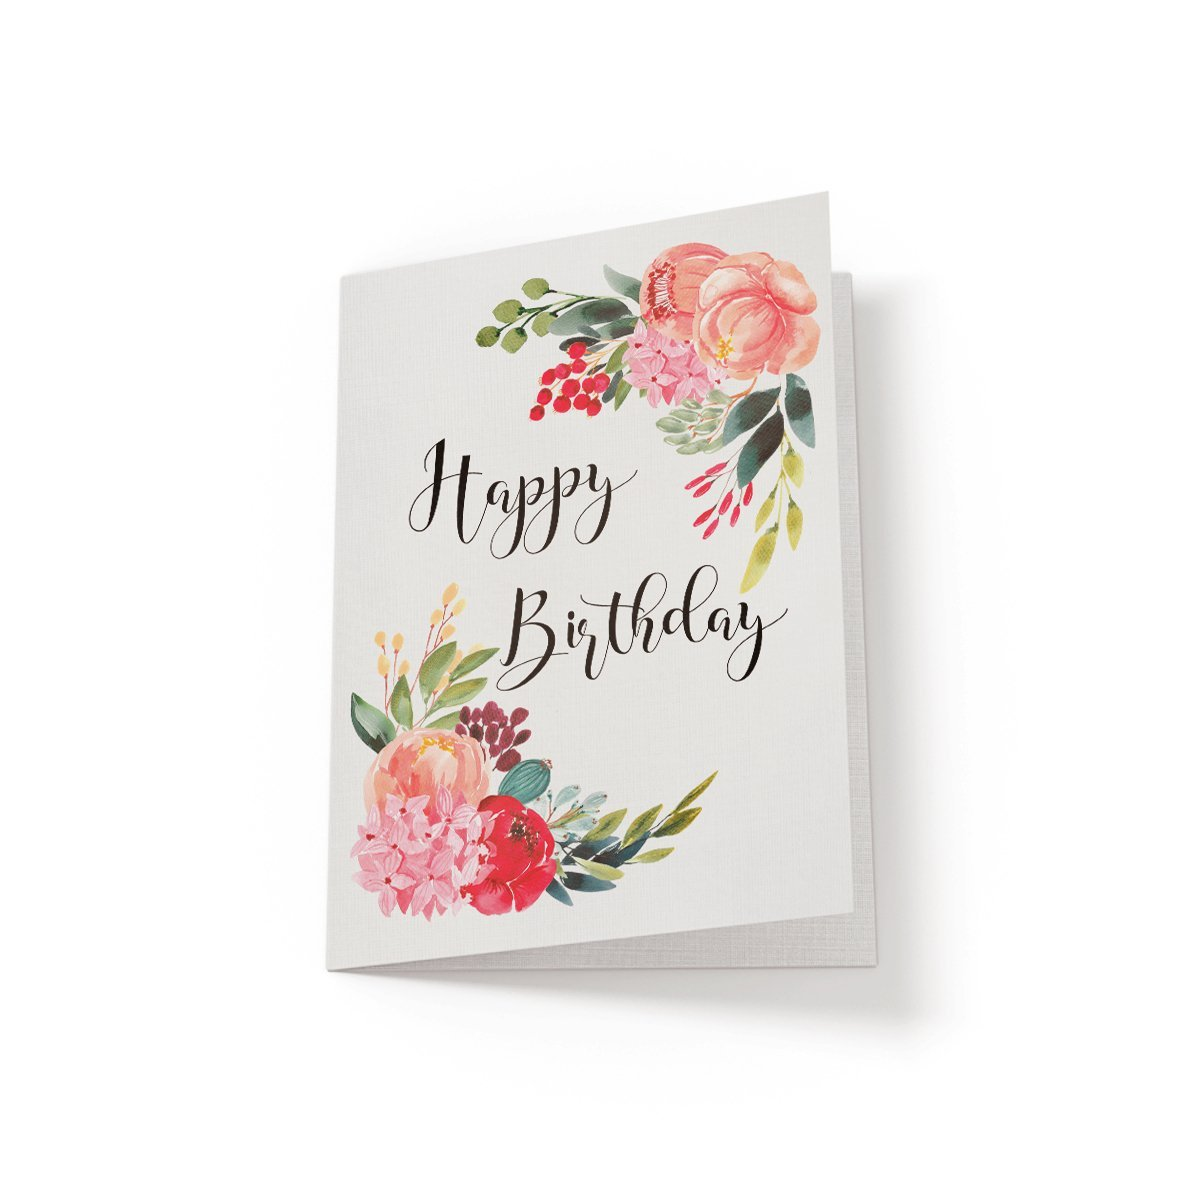 Happy Birthday - Floral Birthday Card - Netties Expressions